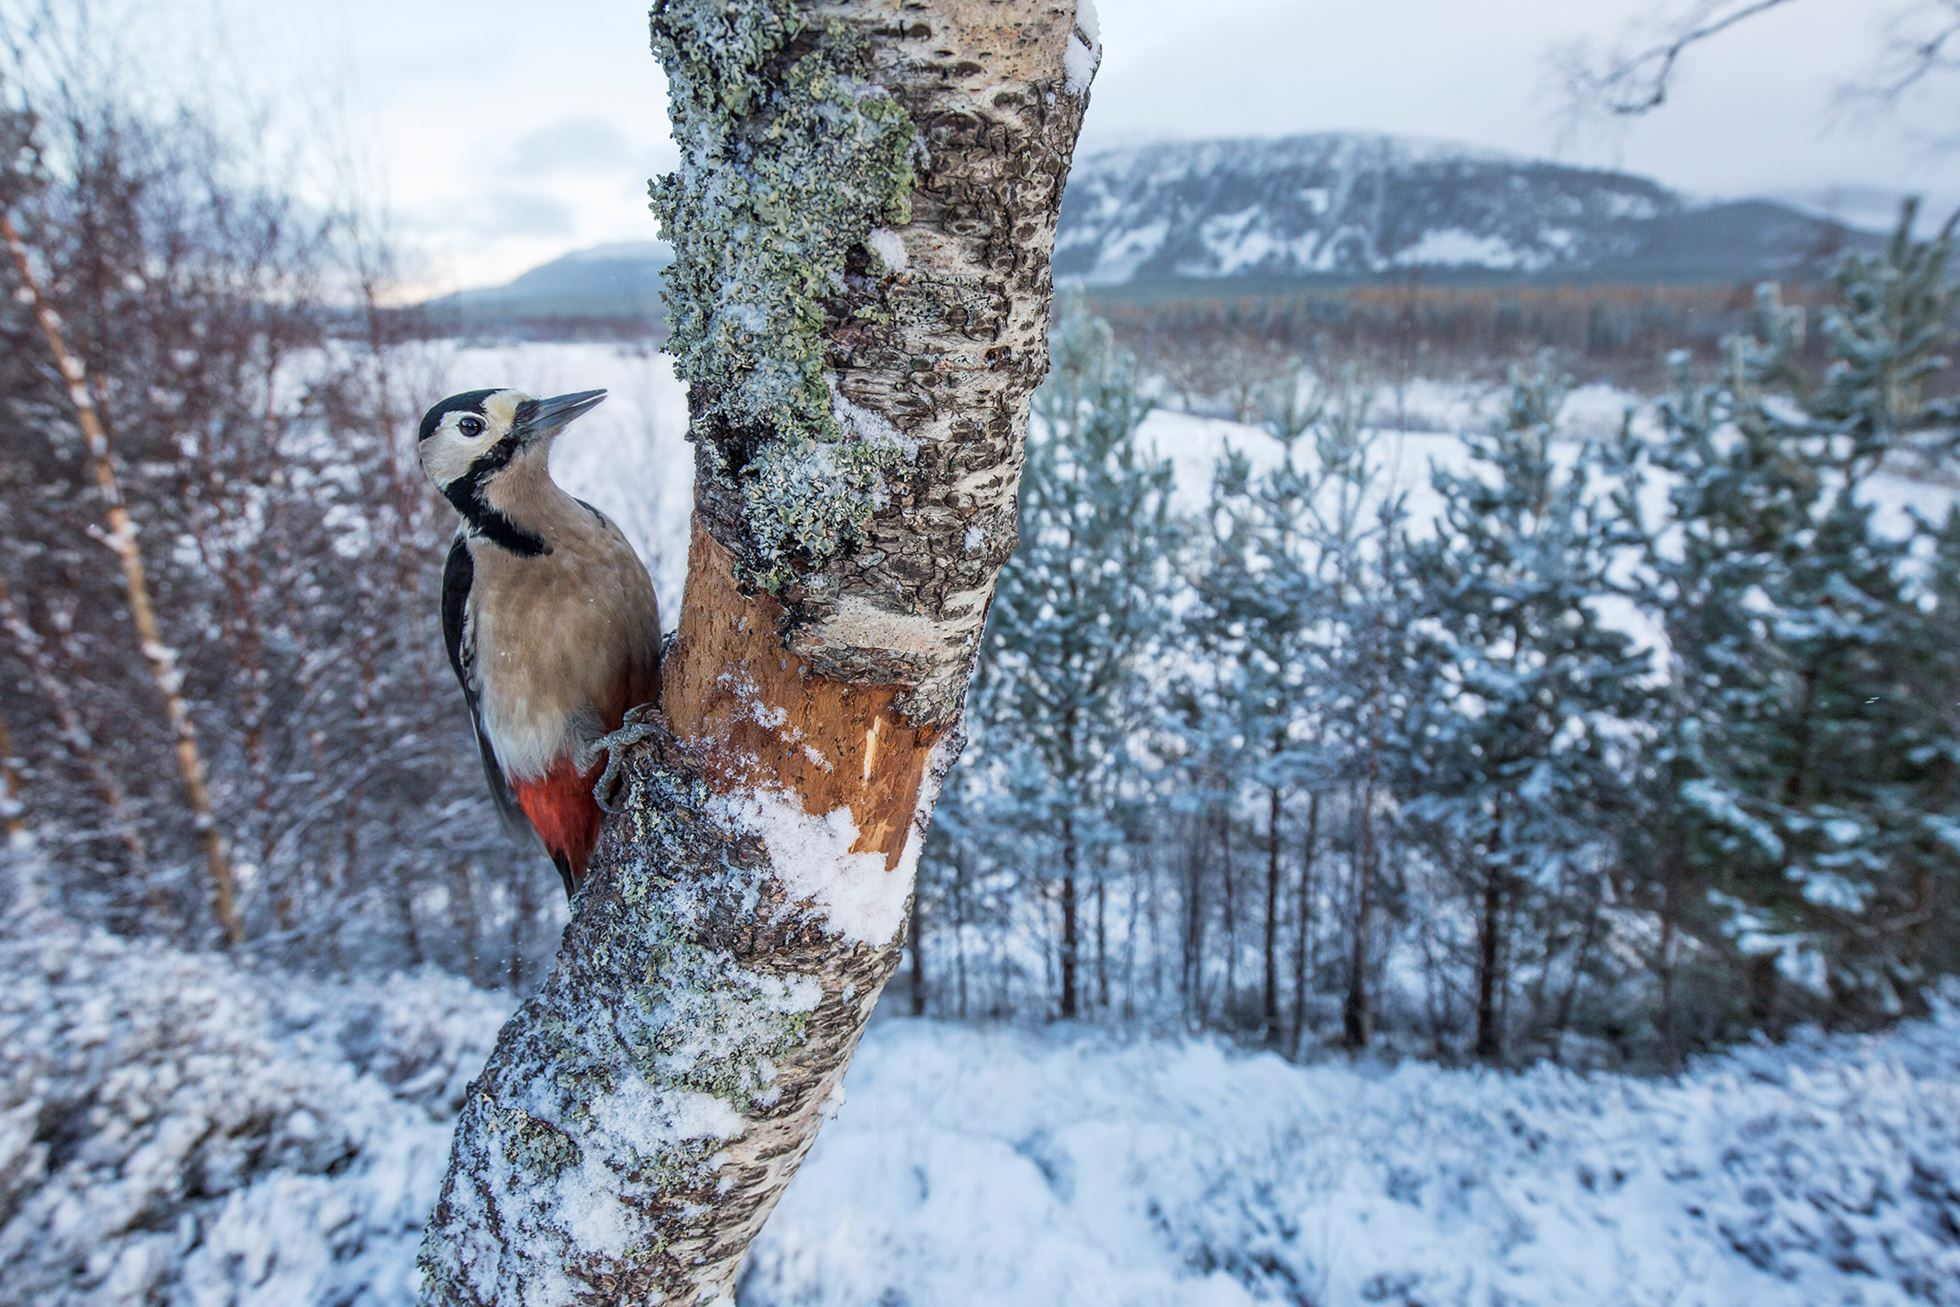 Great spotted woodpecker (Dendrocopus major) in snowy woodland, Glenfeshie, Scotland.